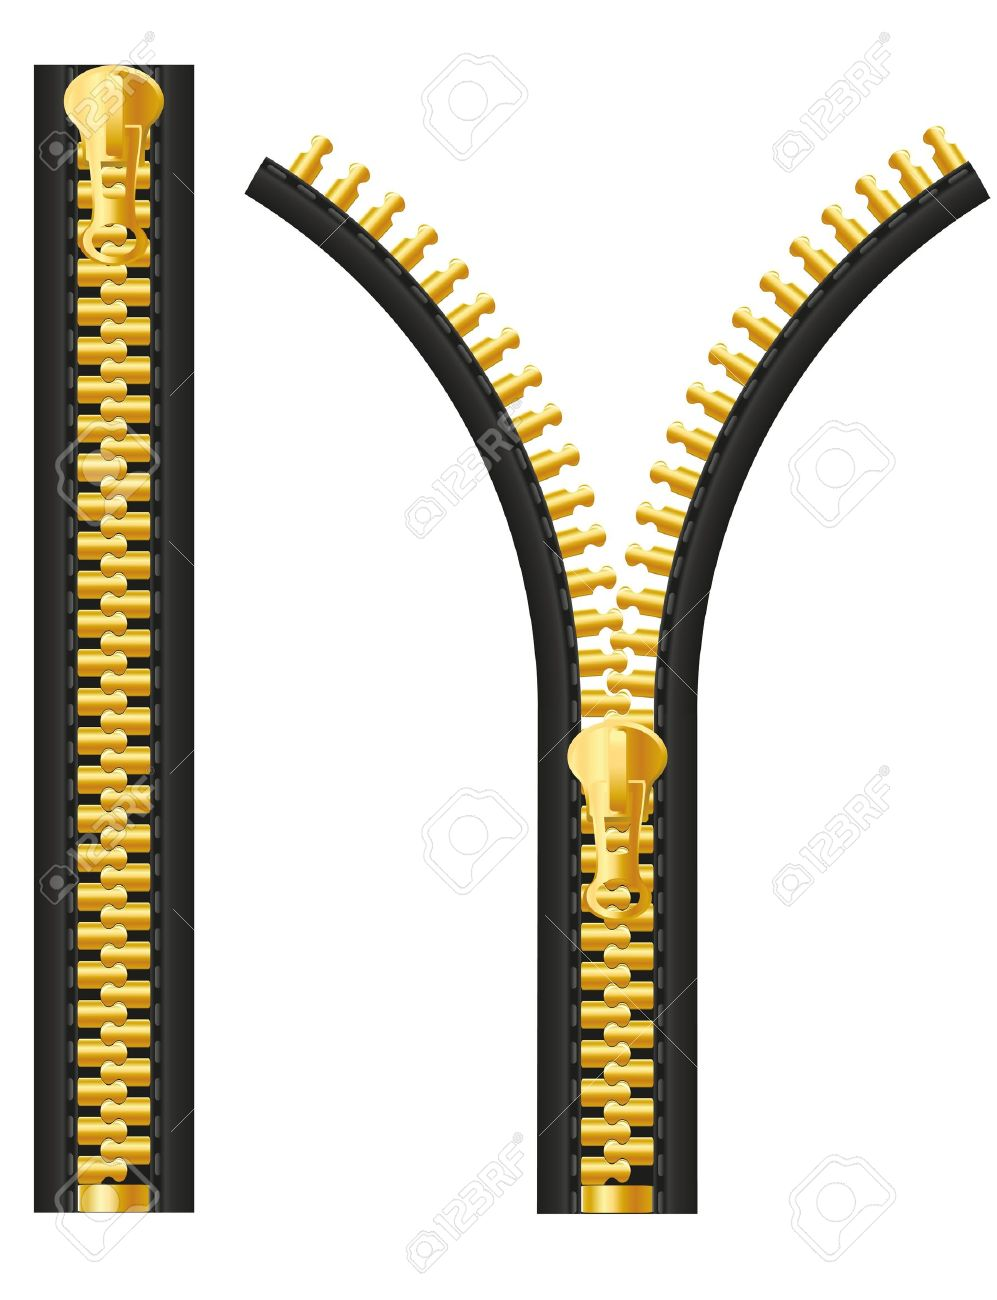 Zipper Illustration Isolated On White Background Stock Photo.